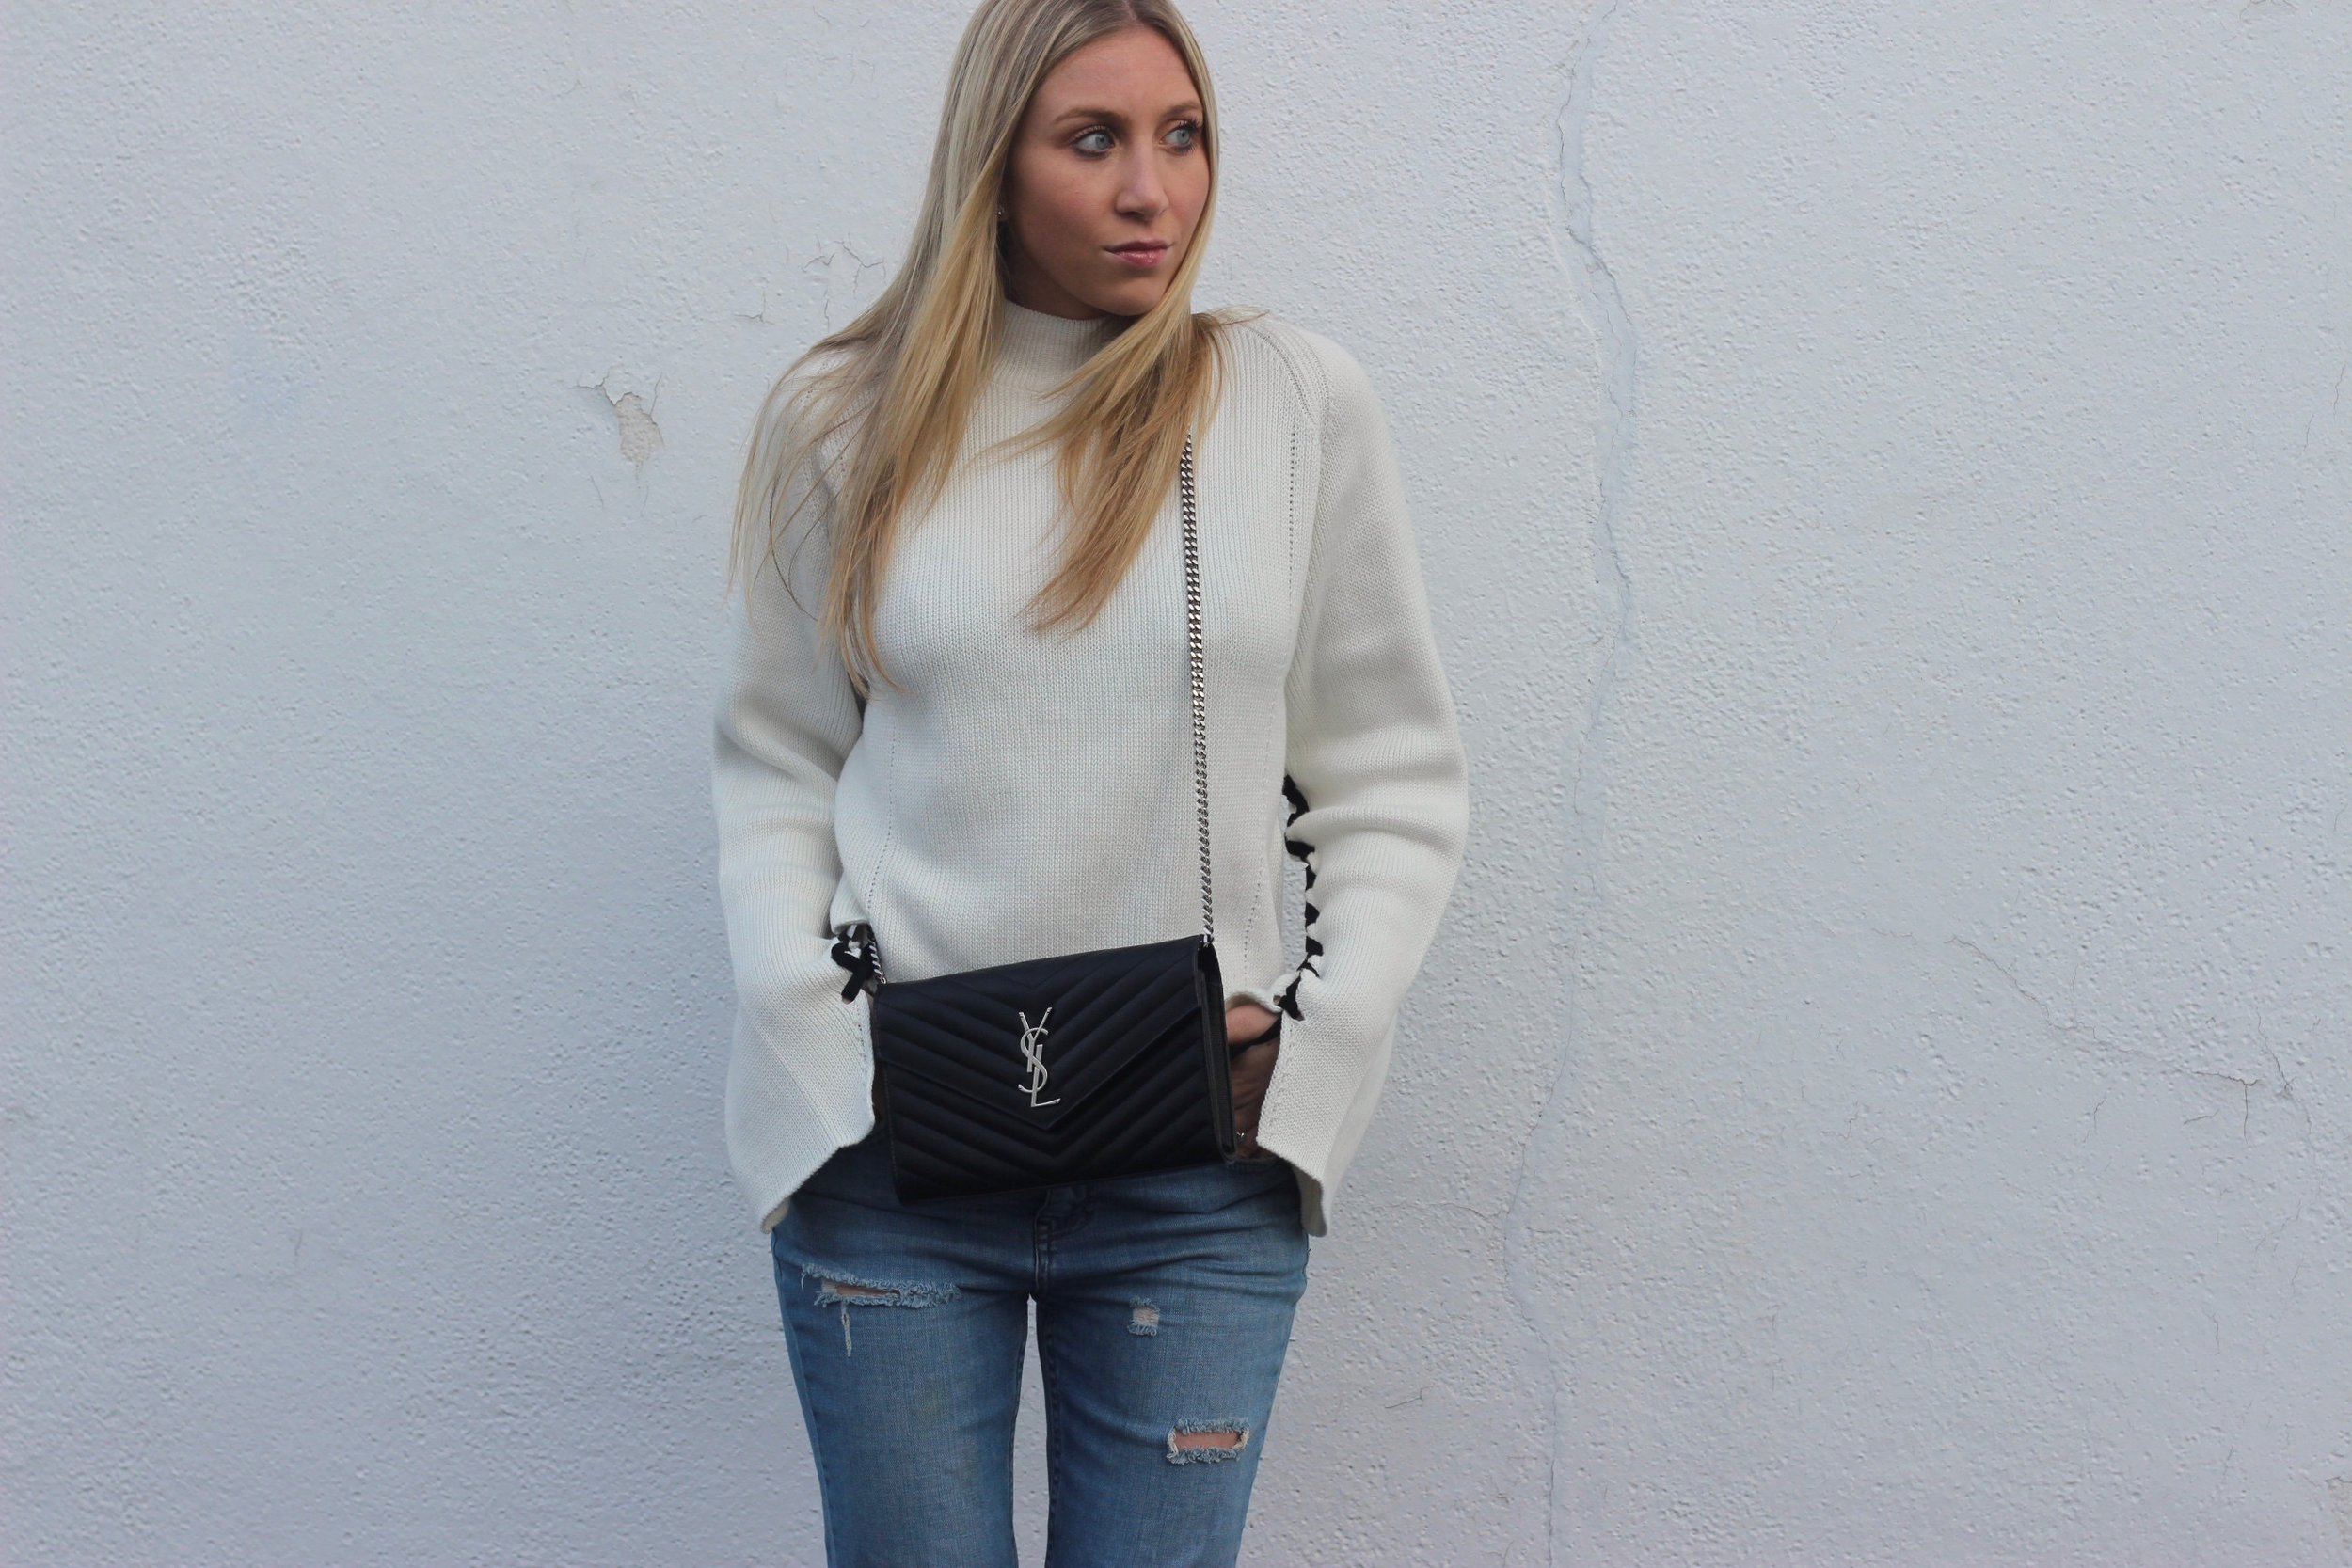 Boyfriend jeans, ysl bag, and statement sleeve sweater by Au Courant Life